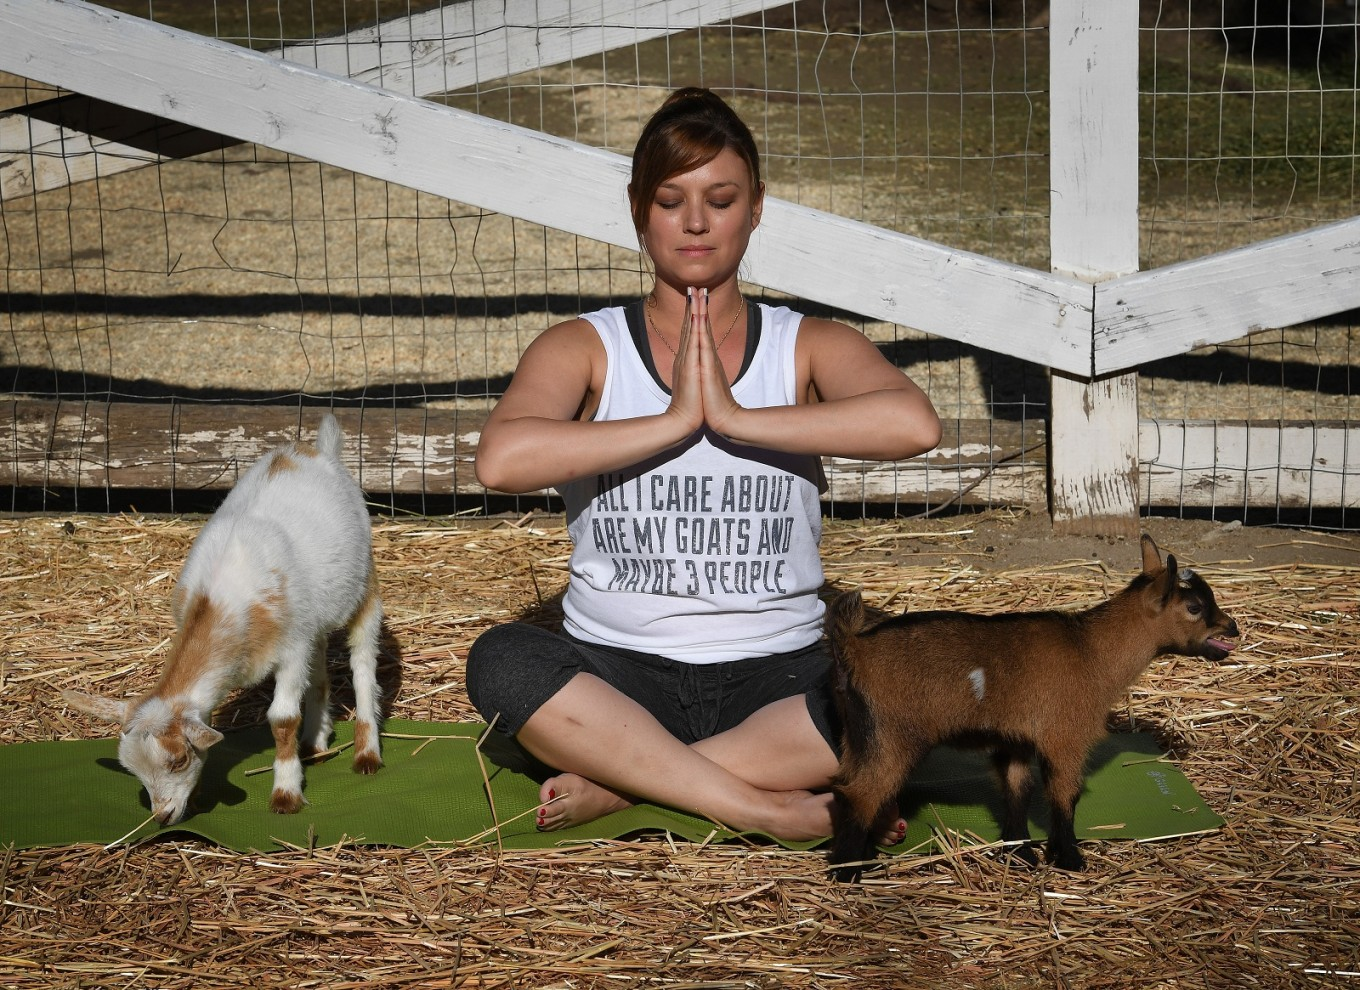 Yoga with goats craze takes off in US